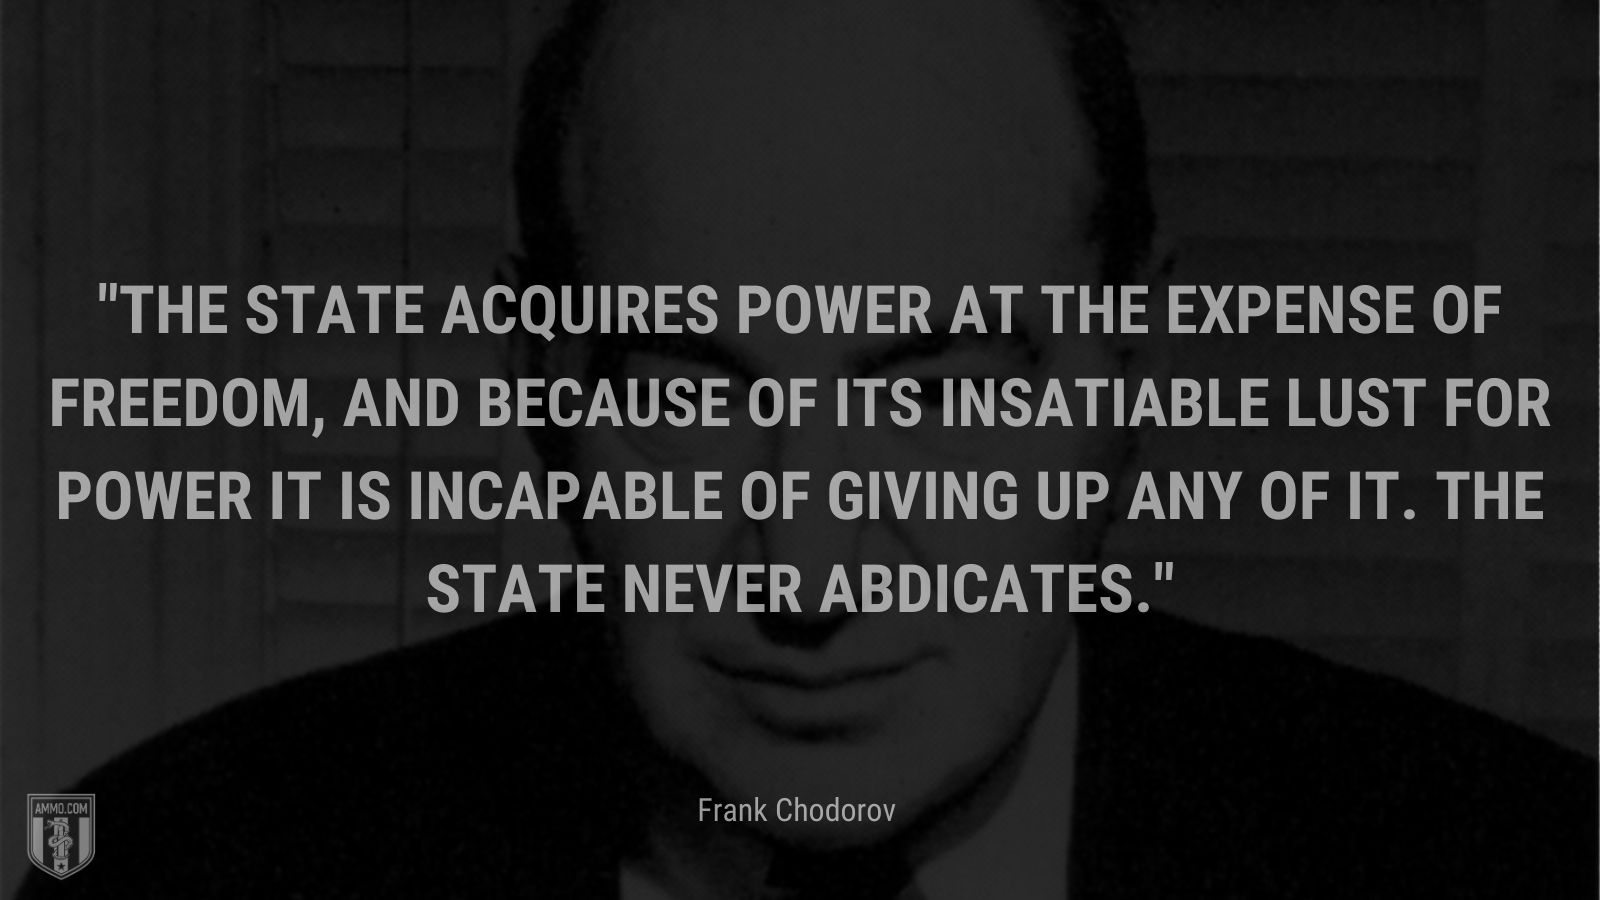 """""""The State acquires power at the expense of freedom, and because of its insatiable lust for power it is incapable of giving up any of it. The State never abdicates. - Frank Chodorov"""